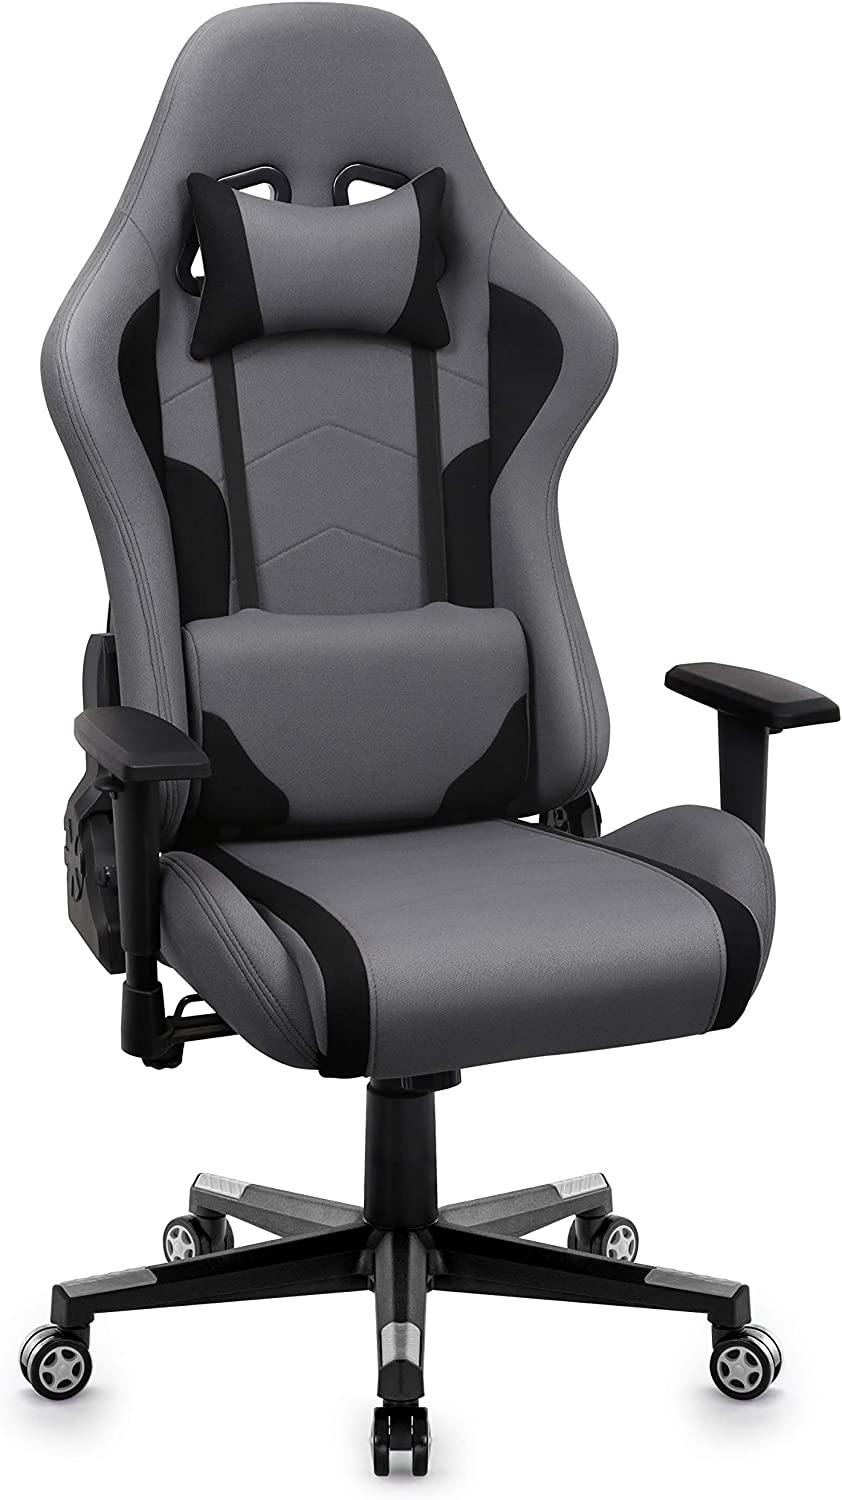 Intimate Wm Heart Gaming Chair Fabric Gaming Chair Breathable Racing Office Chair For Bedroom Ergonomic Swivel High Back Recliner Computer Desk Chair Amazon Co Uk Kitchen Home